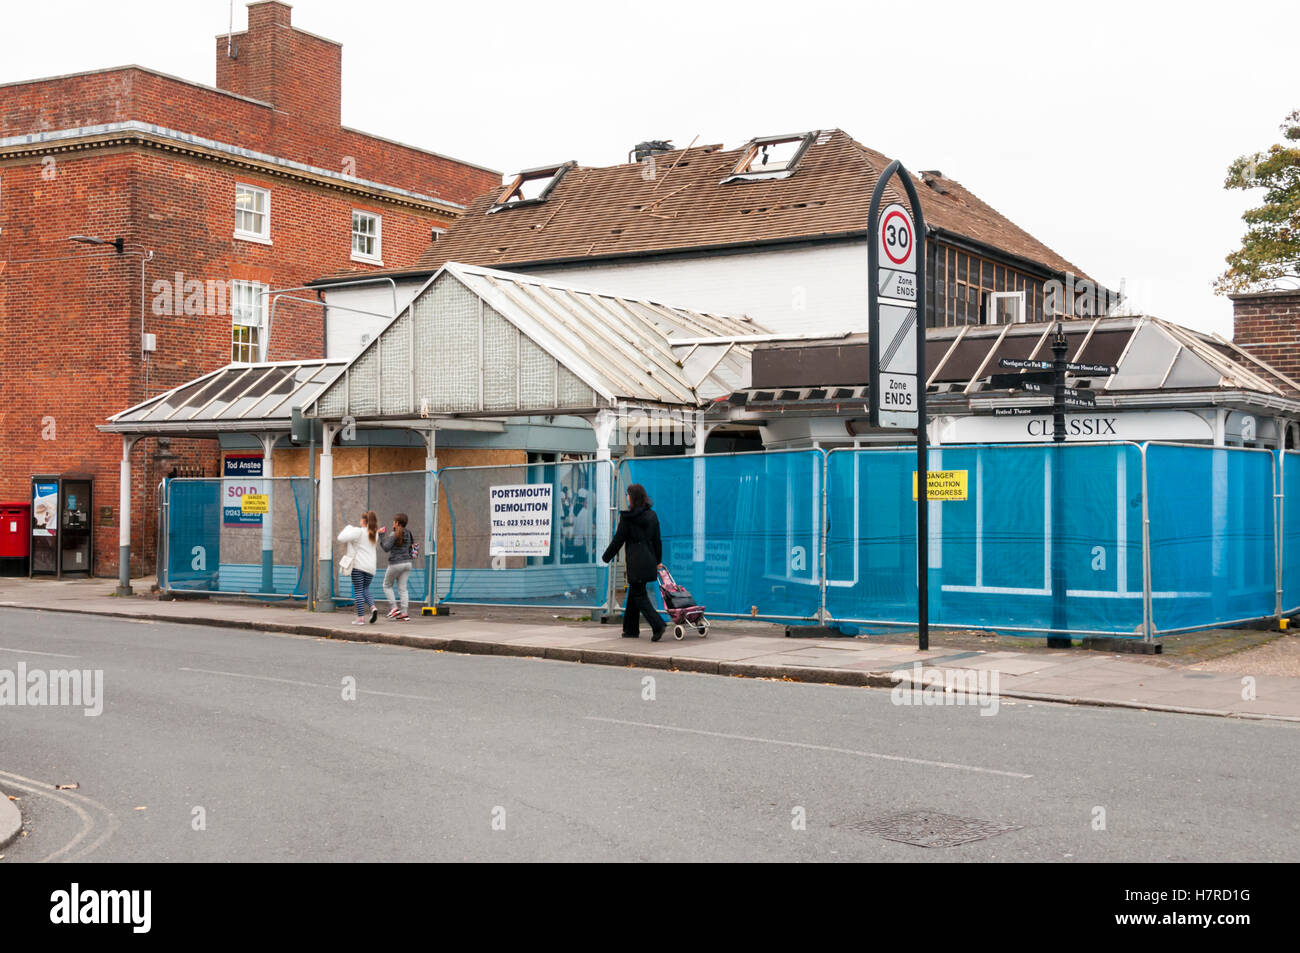 The Chichester Boardwalk shopping arcade is being demolished and replaced with new houses, flats and shops. - Stock Image